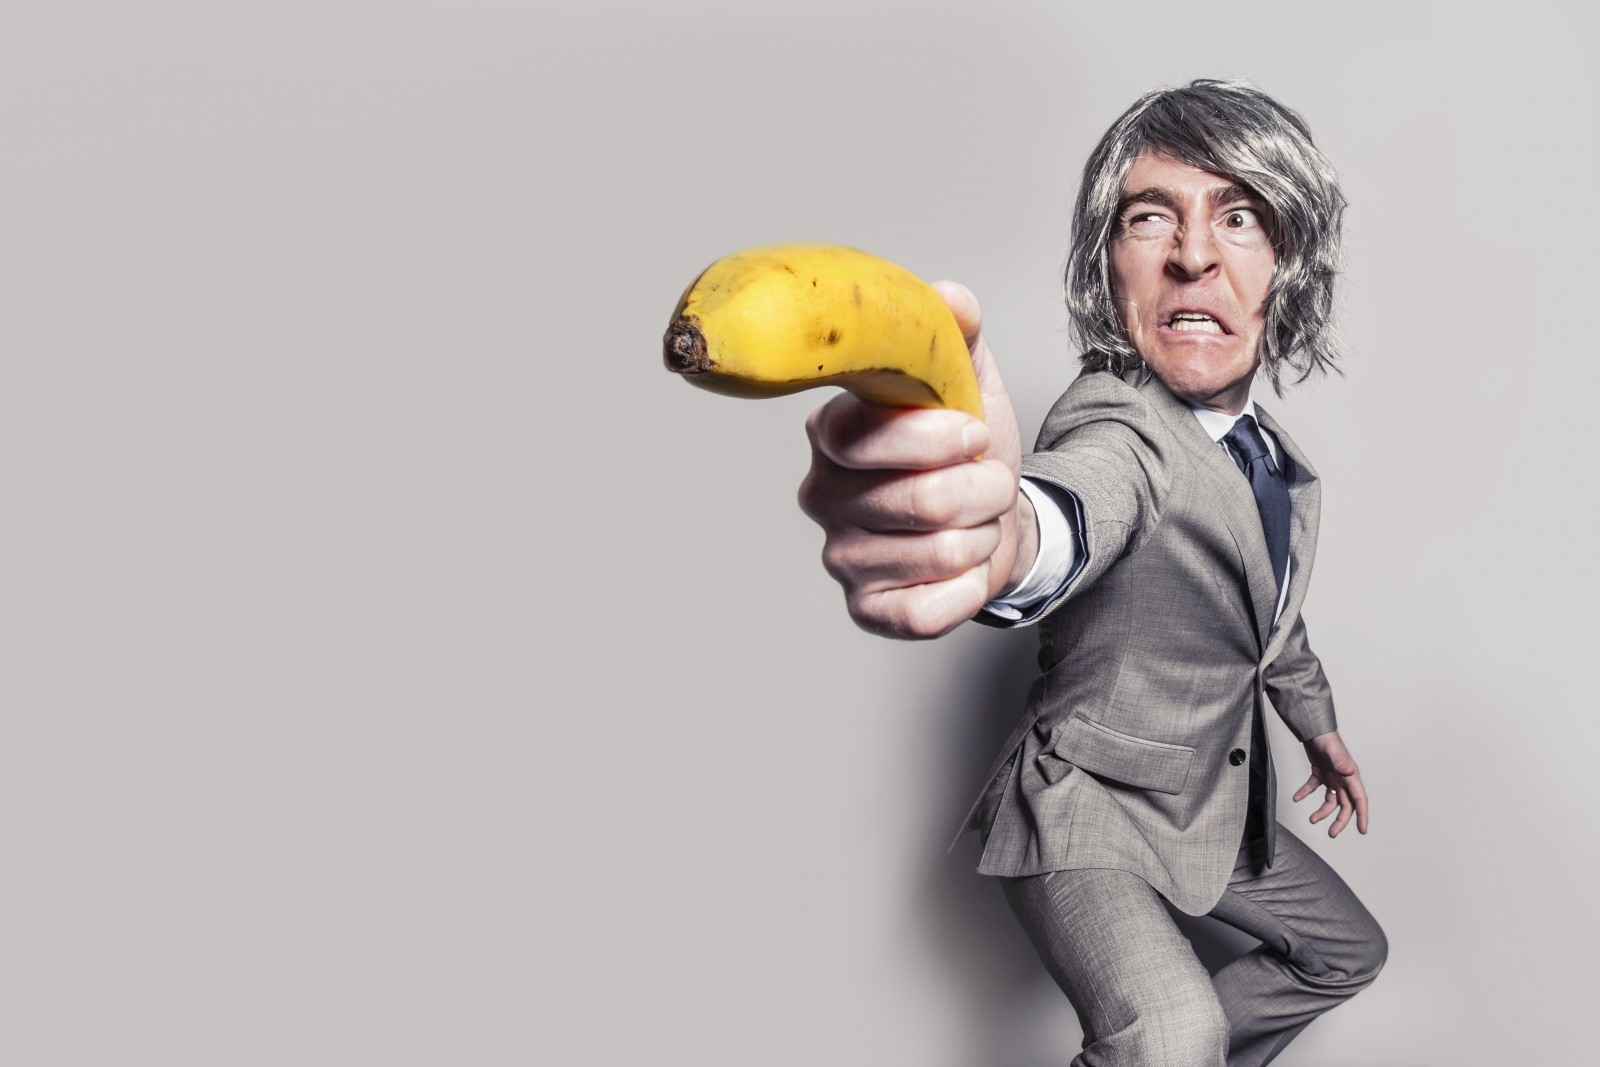 Average look of a business man holding a banana as a weapon